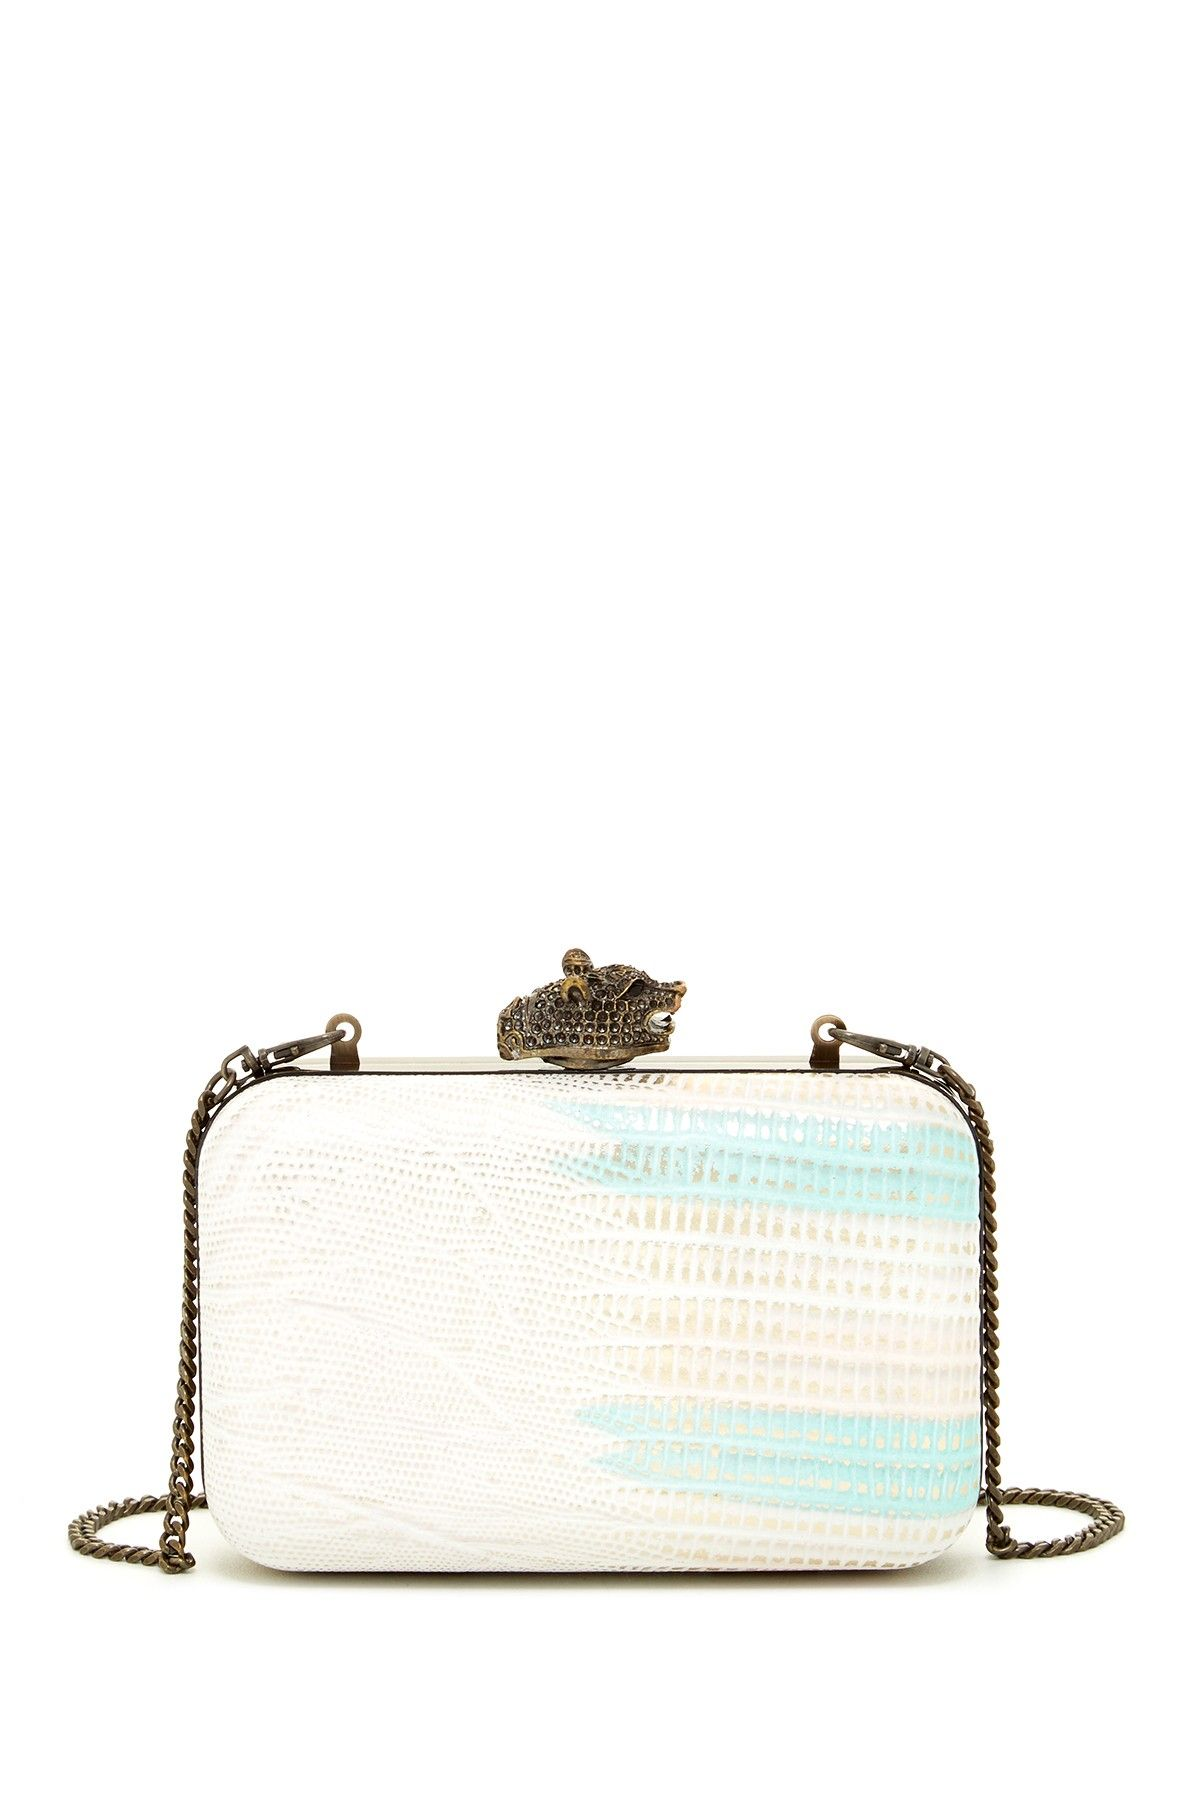 0d8fd7f51d61 House Of Harlow Dylan Clutch